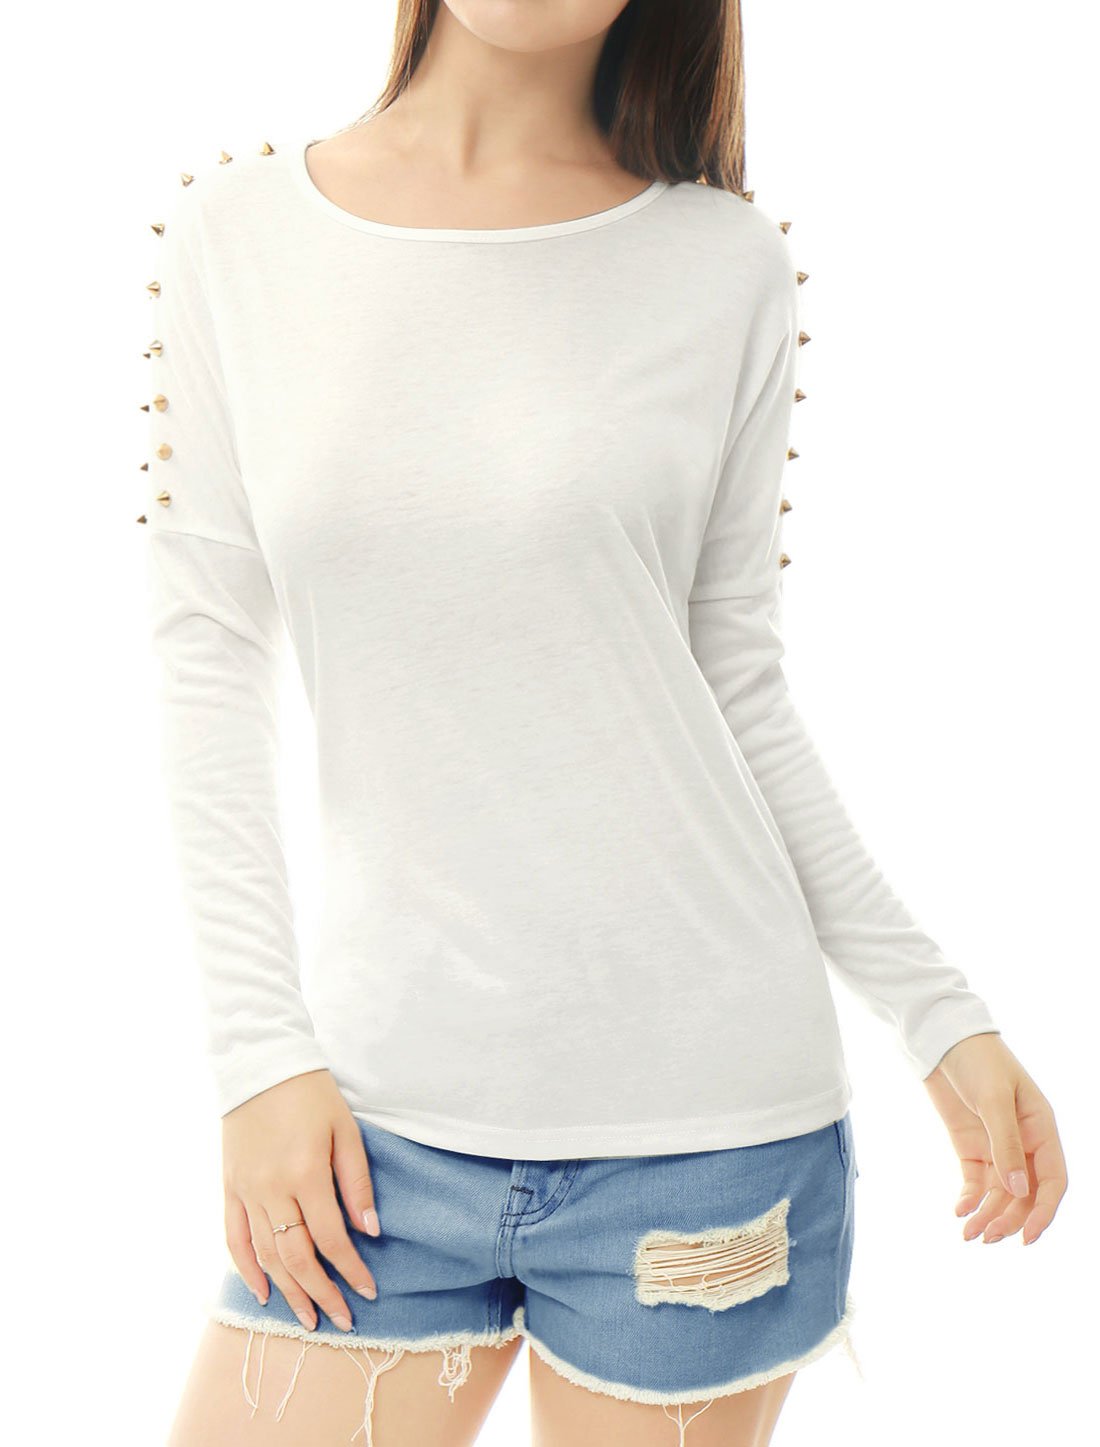 Women Round Neck Studs Embellished Dolman Sleeves Top White S